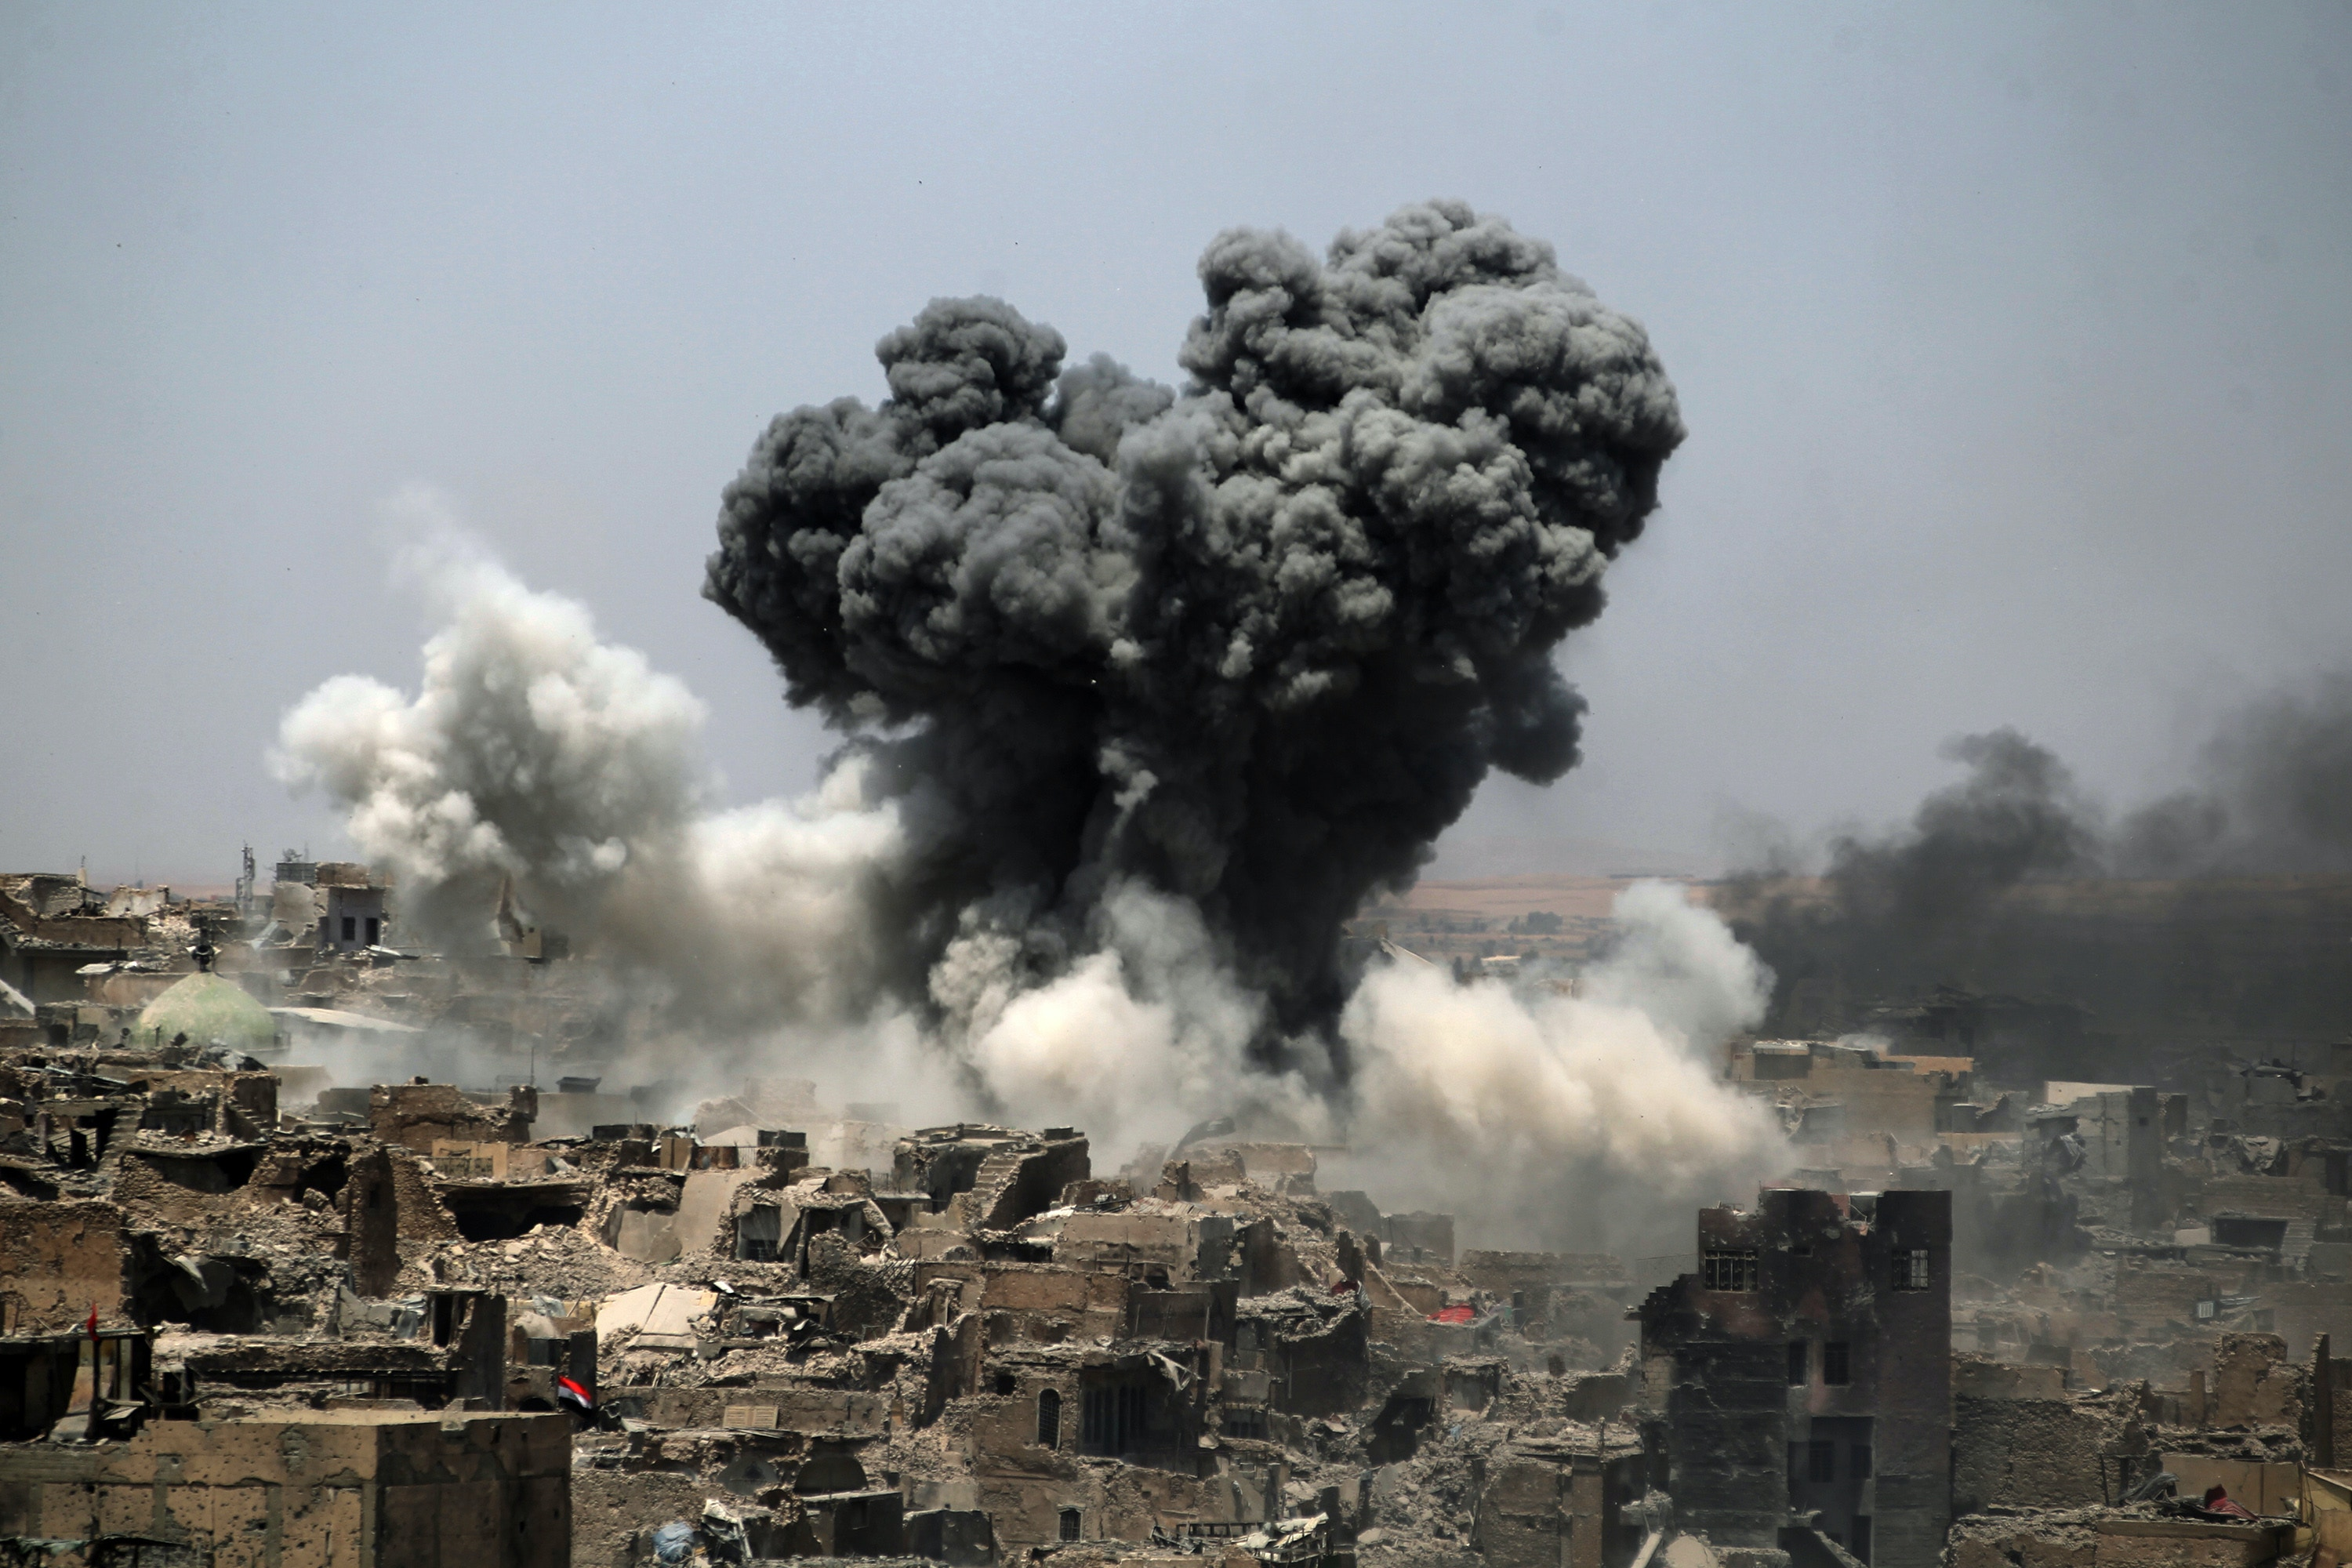 A picture taken on July 9, 2017, shows smoke billowing following an airstrike by US-led international coalition forces targeting Islamic State (IS) group in Mosul. Iraq will announce imminently a final victory in the nearly nine-month offensive to retake Mosul from jihadists, a US general said Saturday, as celebrations broke out among police forces in the city. / AFP PHOTO / AHMAD AL-RUBAYE        (Photo credit should read AHMAD AL-RUBAYE/AFP via Getty Images)